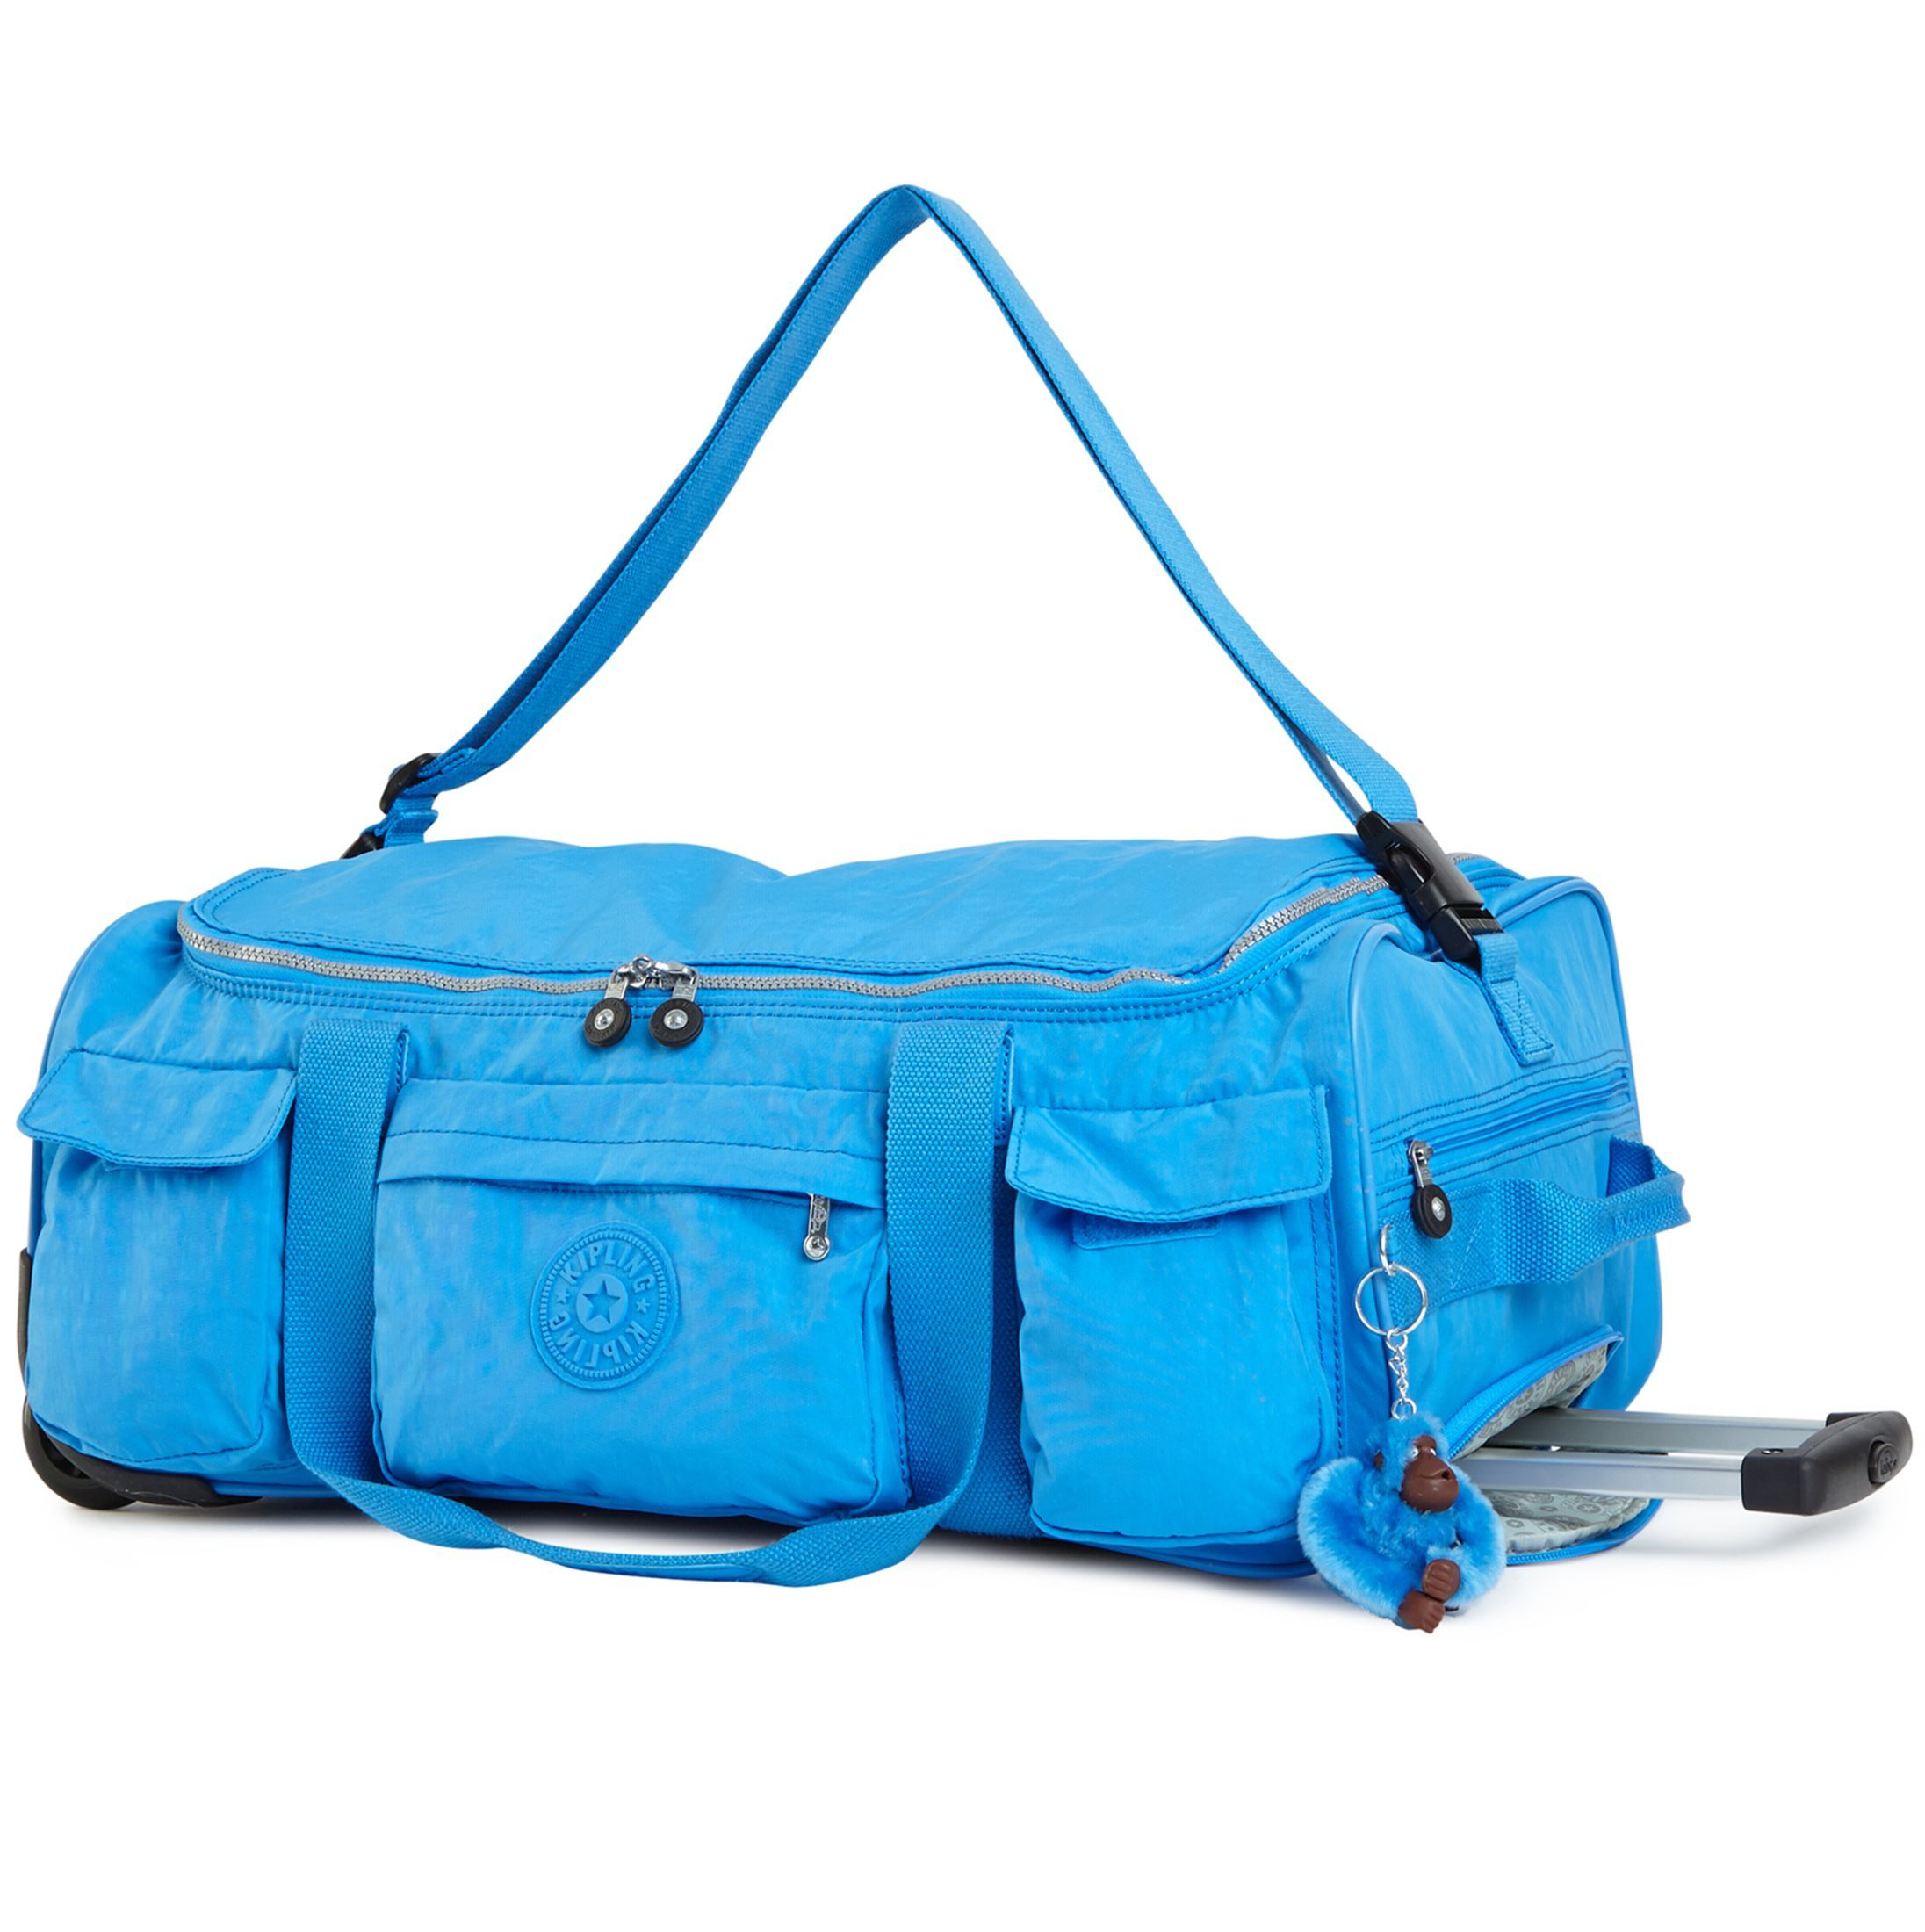 6c0bef336a DISCOVER SMALL WHEELED LUGGAGE DUFFLE - Blue Jay